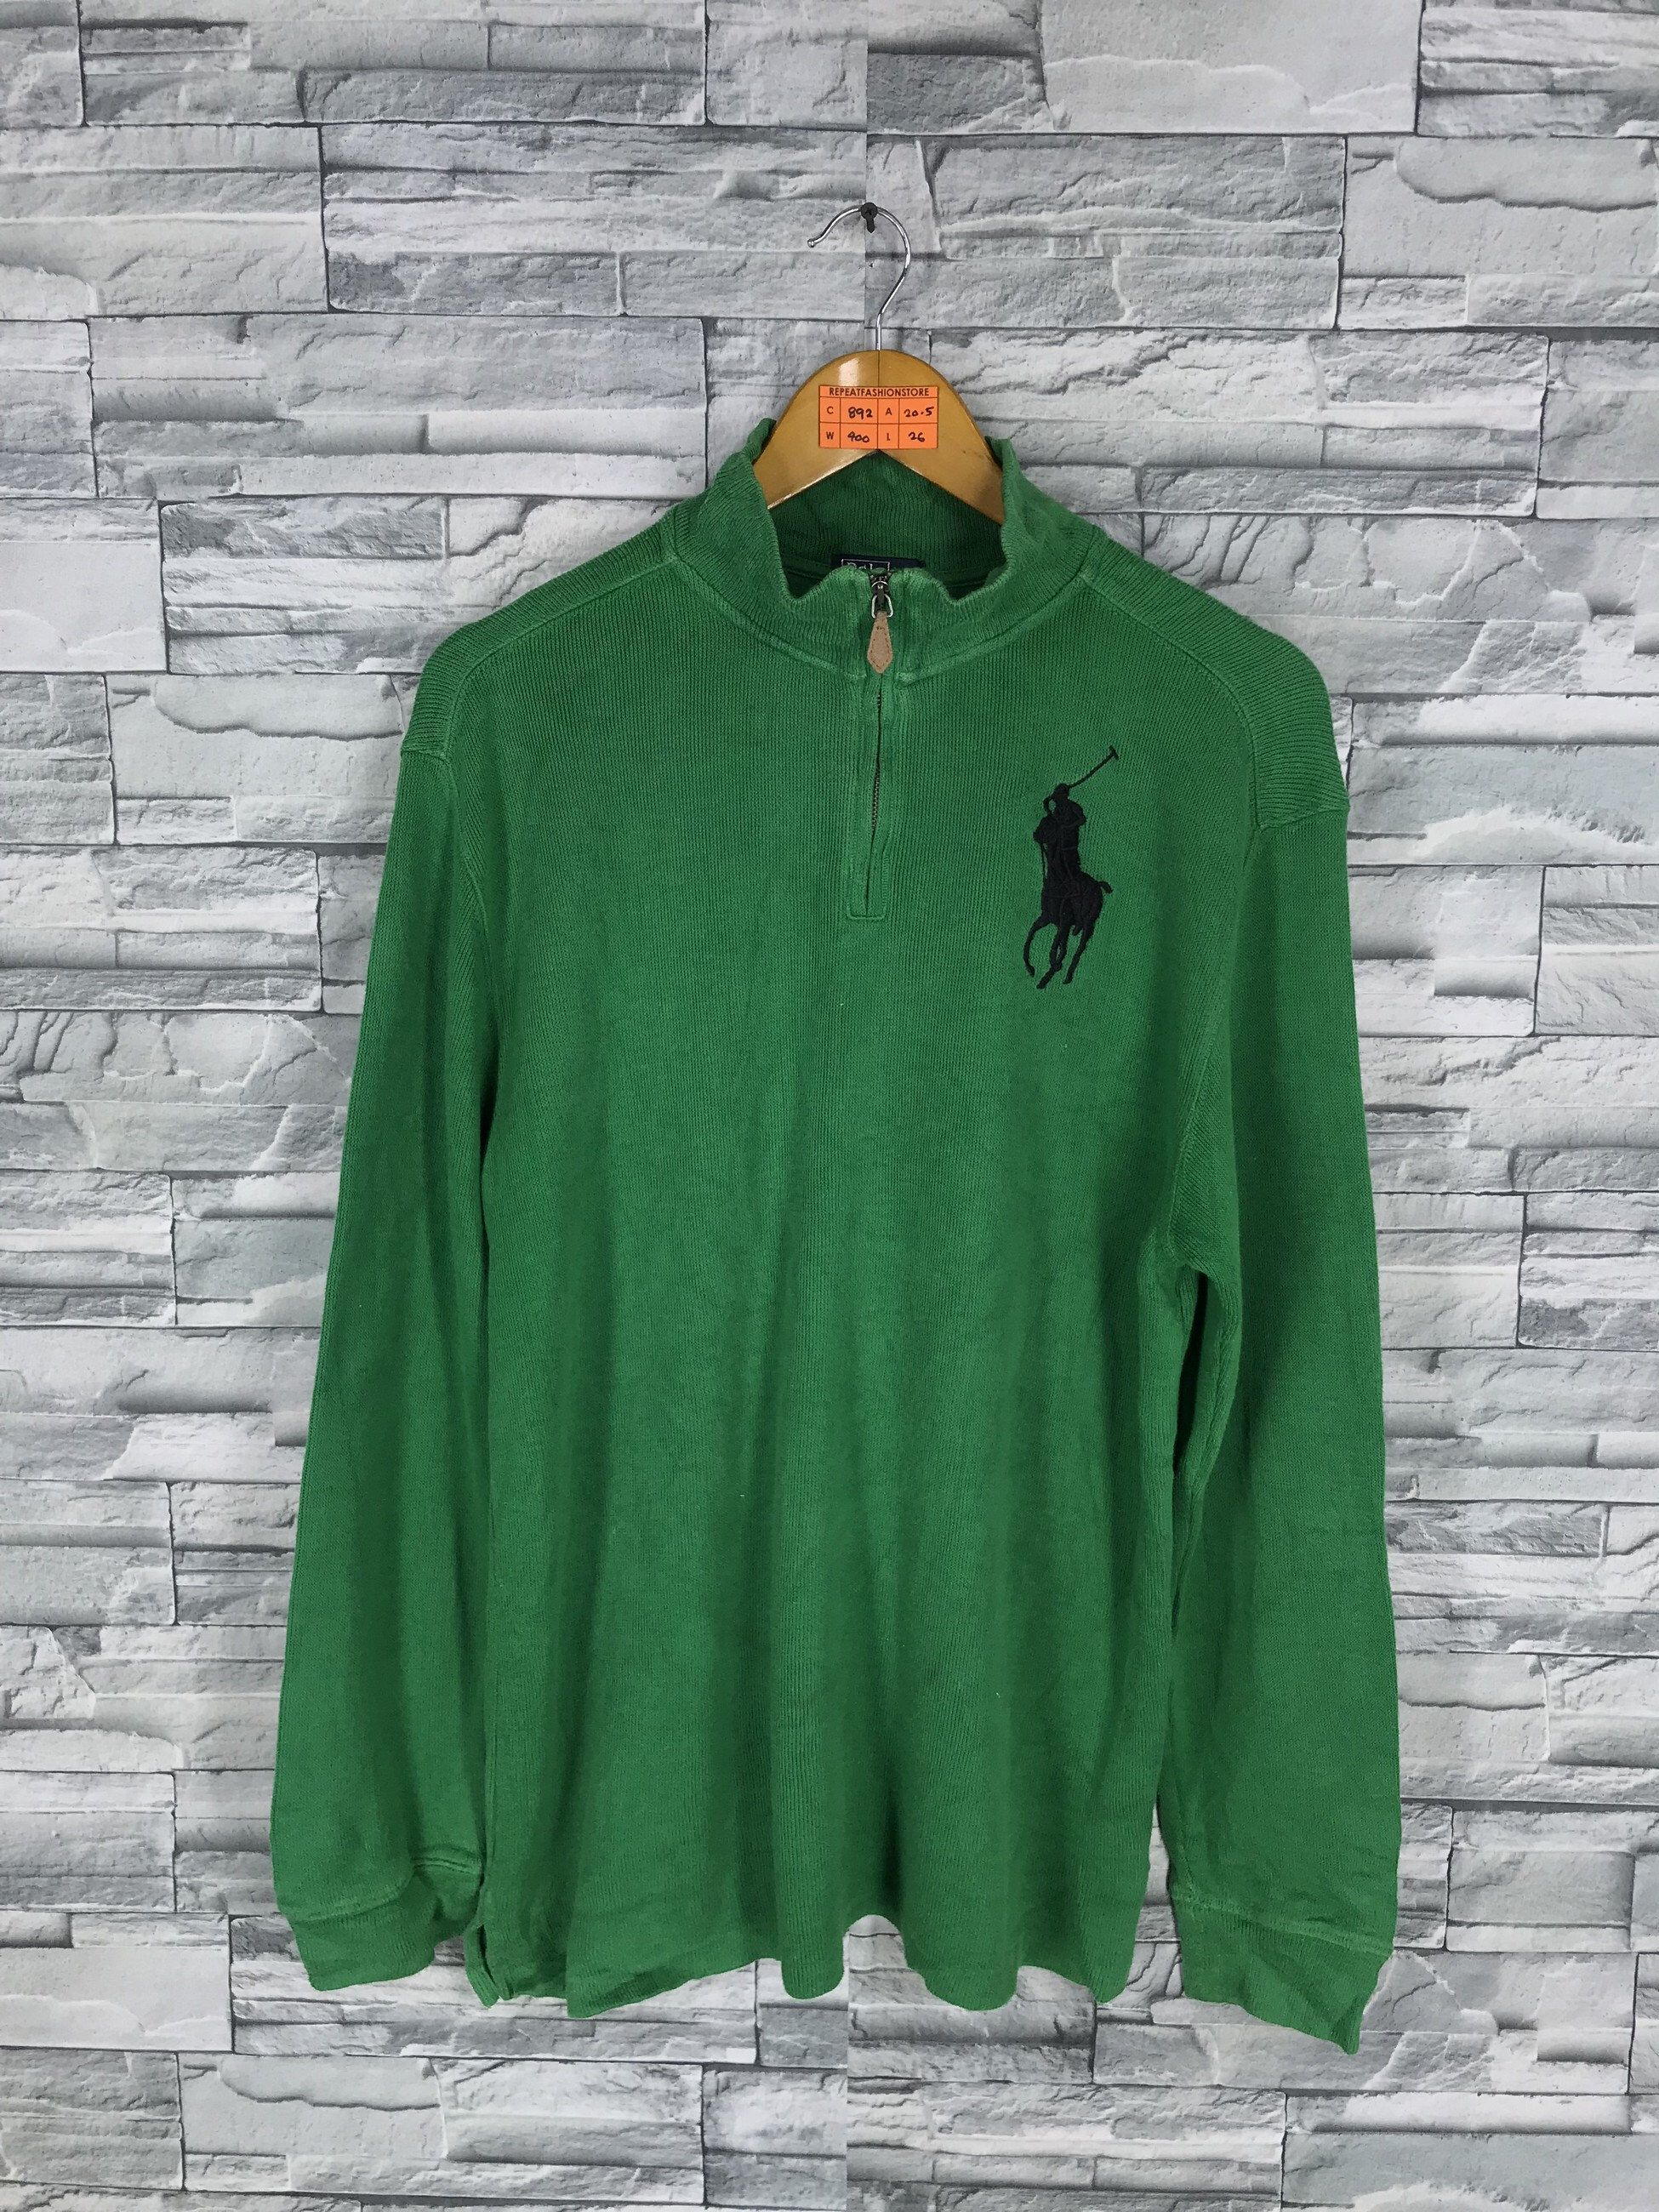 ee02038a2 Excited to share the latest addition to my  etsy shop  Vintage 90s Polo  RALPH LAUREN Sweater Jumper Medium Ralph Lauren Pony Green Pullover  Sportswear ...